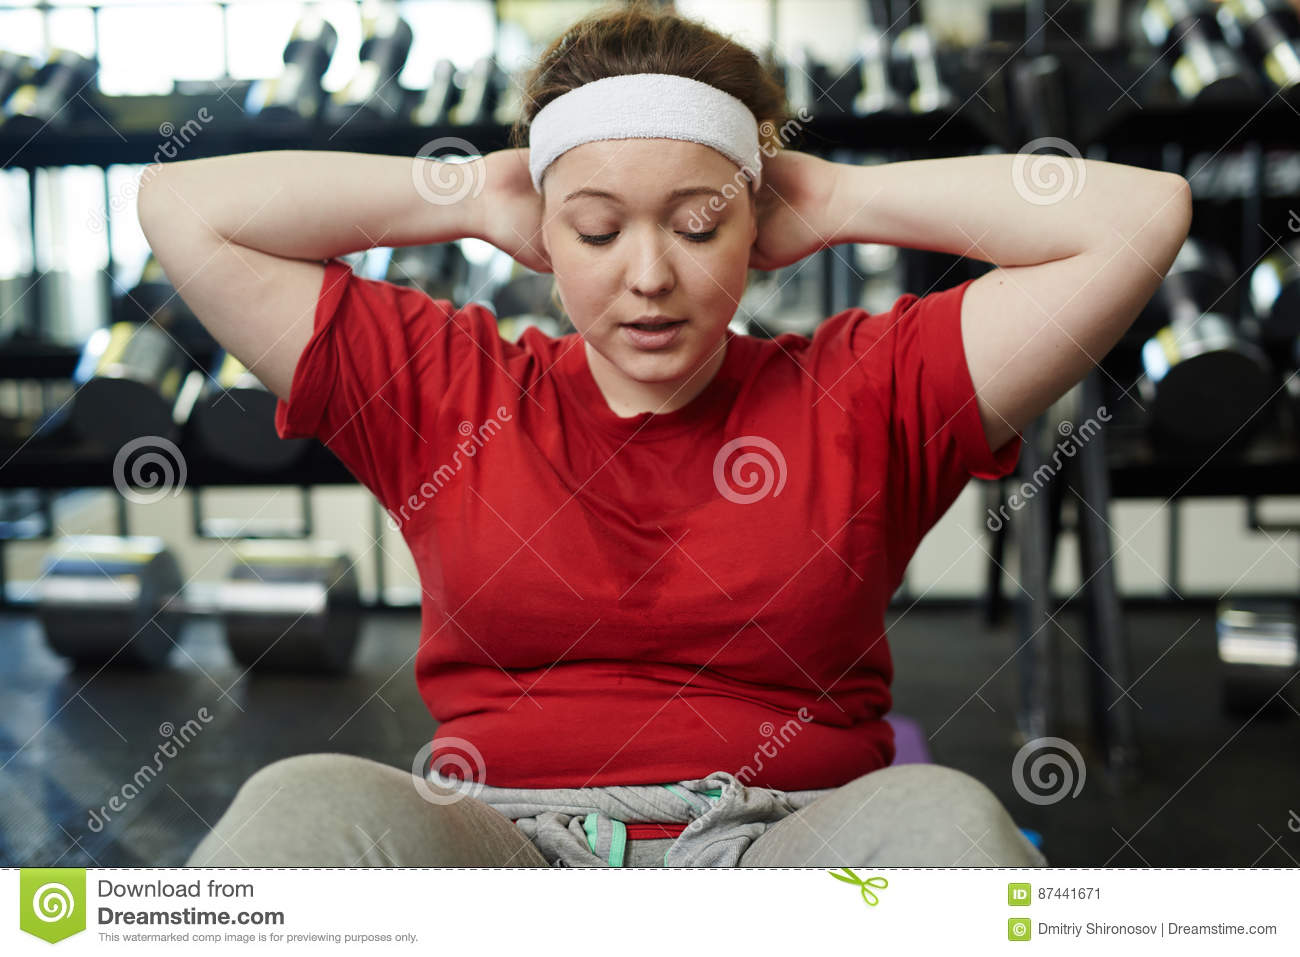 Overweight Woman Sweating In Gym To Be Fit Stock Image Image Of Sport Weight 87441671